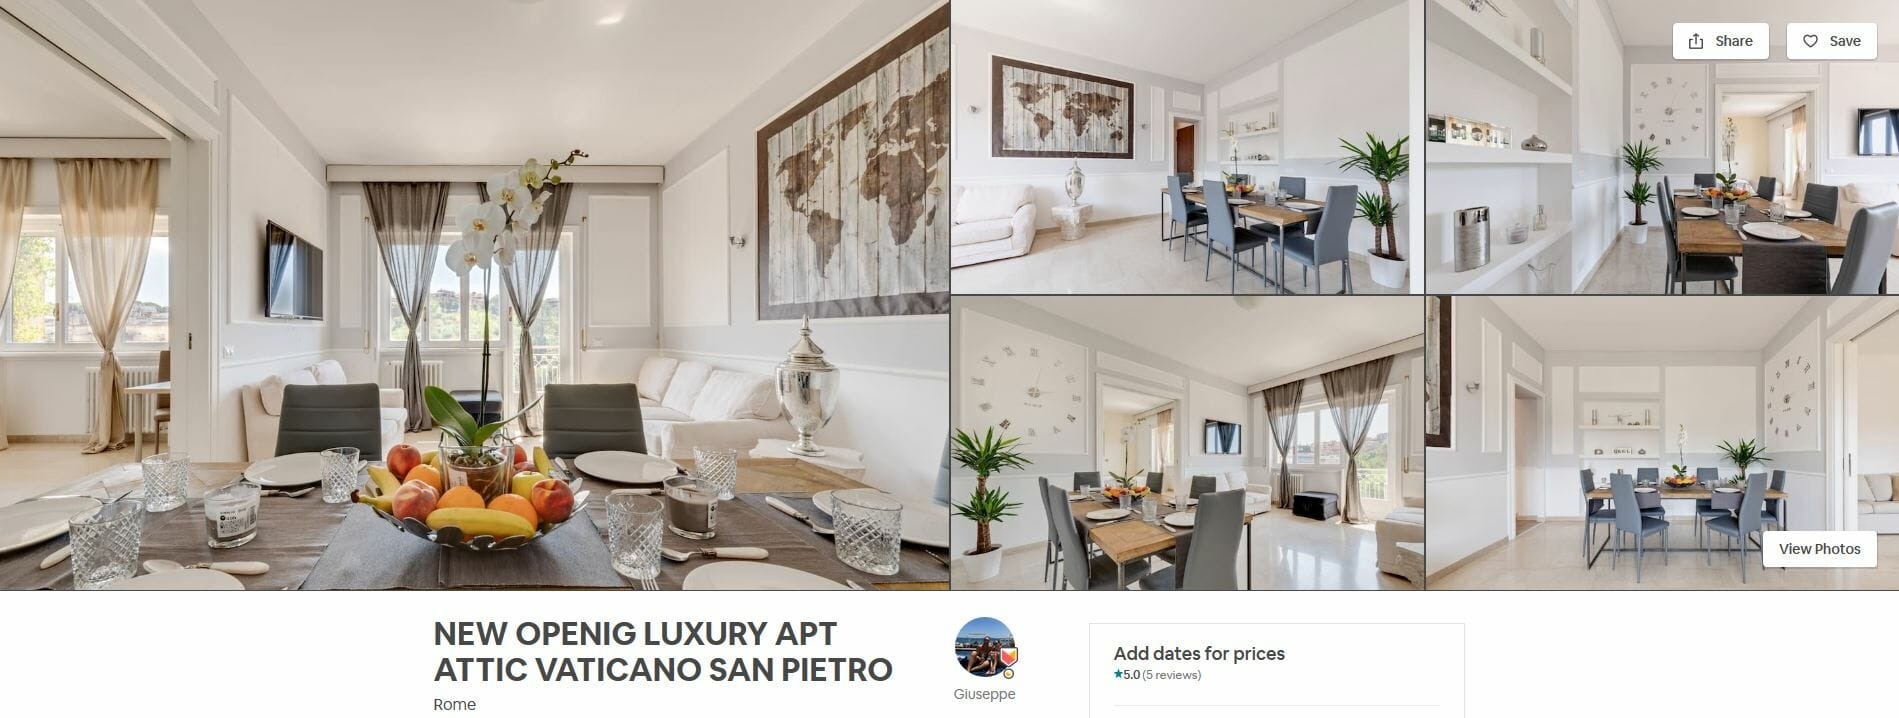 best airbnbs rome New Openig Luxury